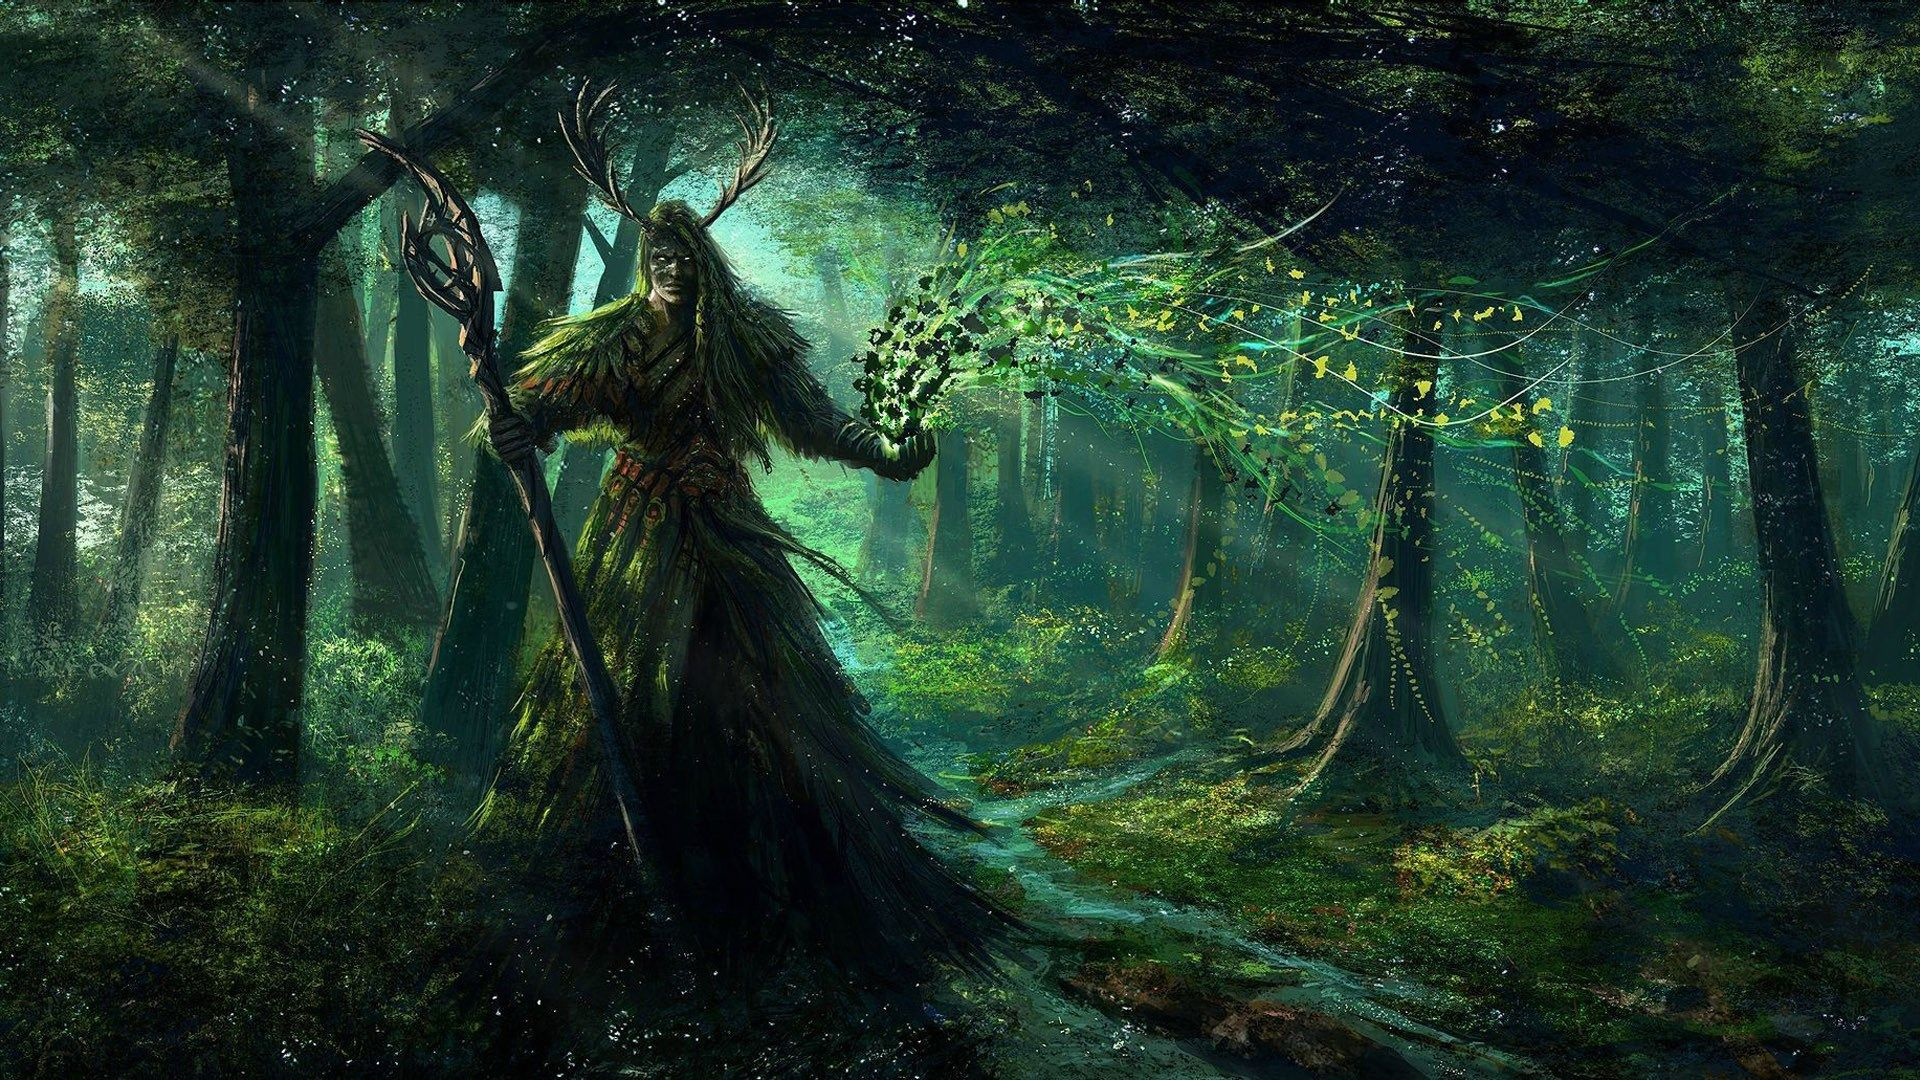 Druid Picture For Desktops Druid Category Fantasy Art Druid Hd Wallpaper